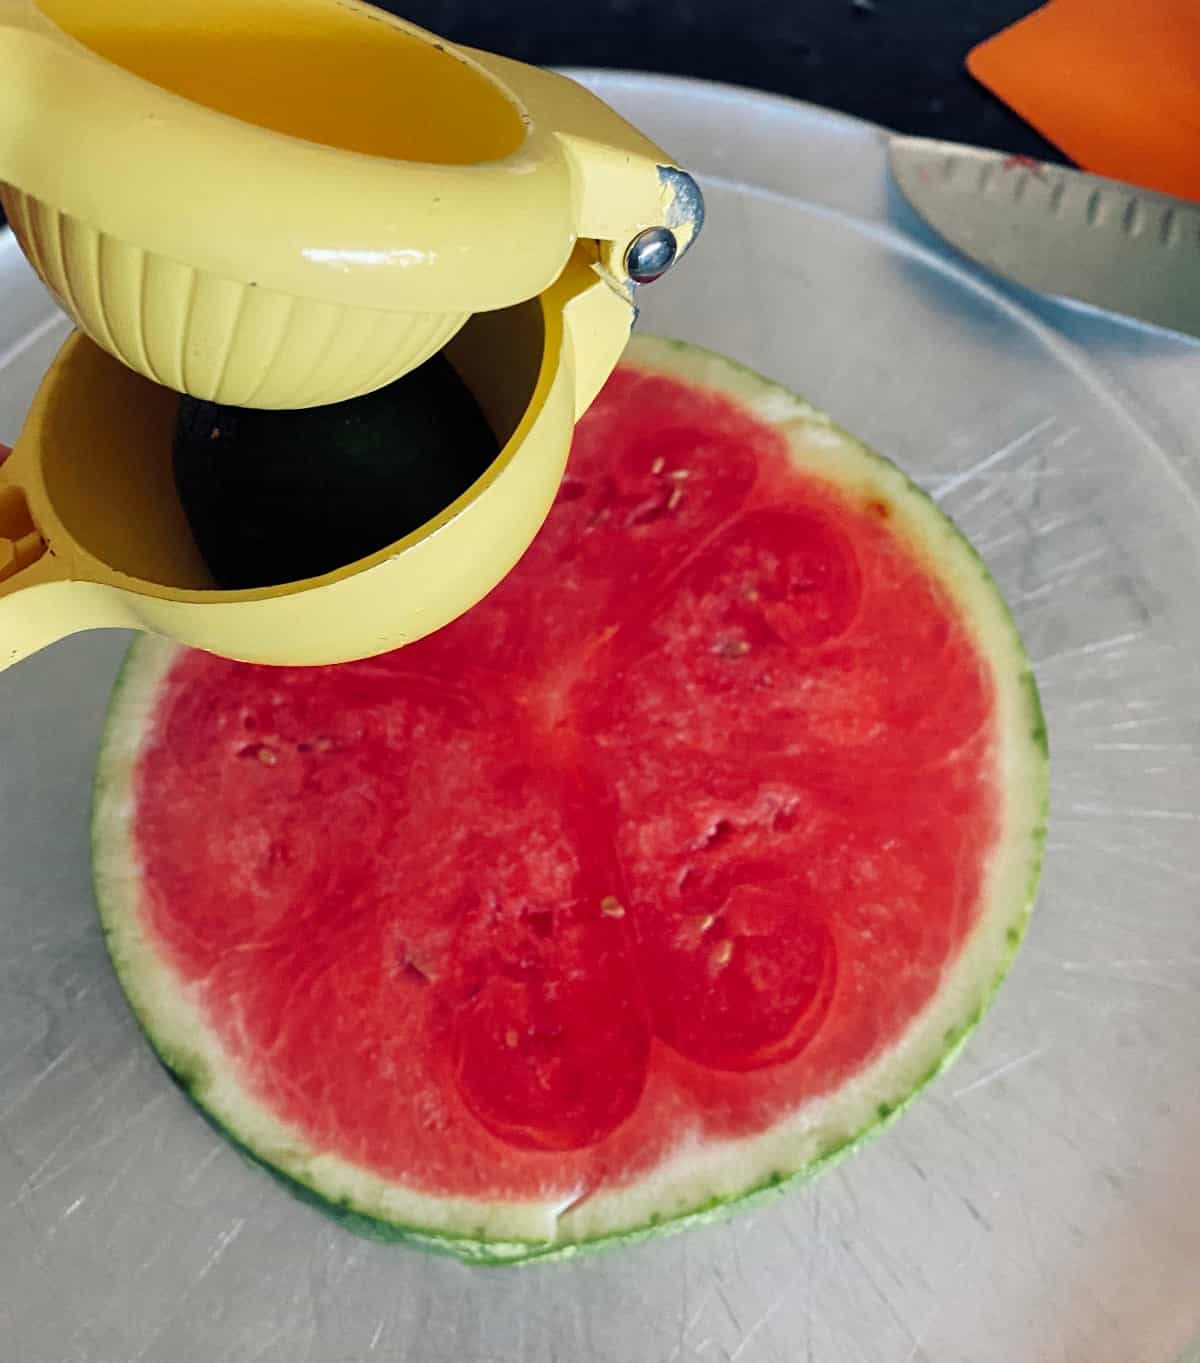 Squeezing lime juice over slice of watermelon.